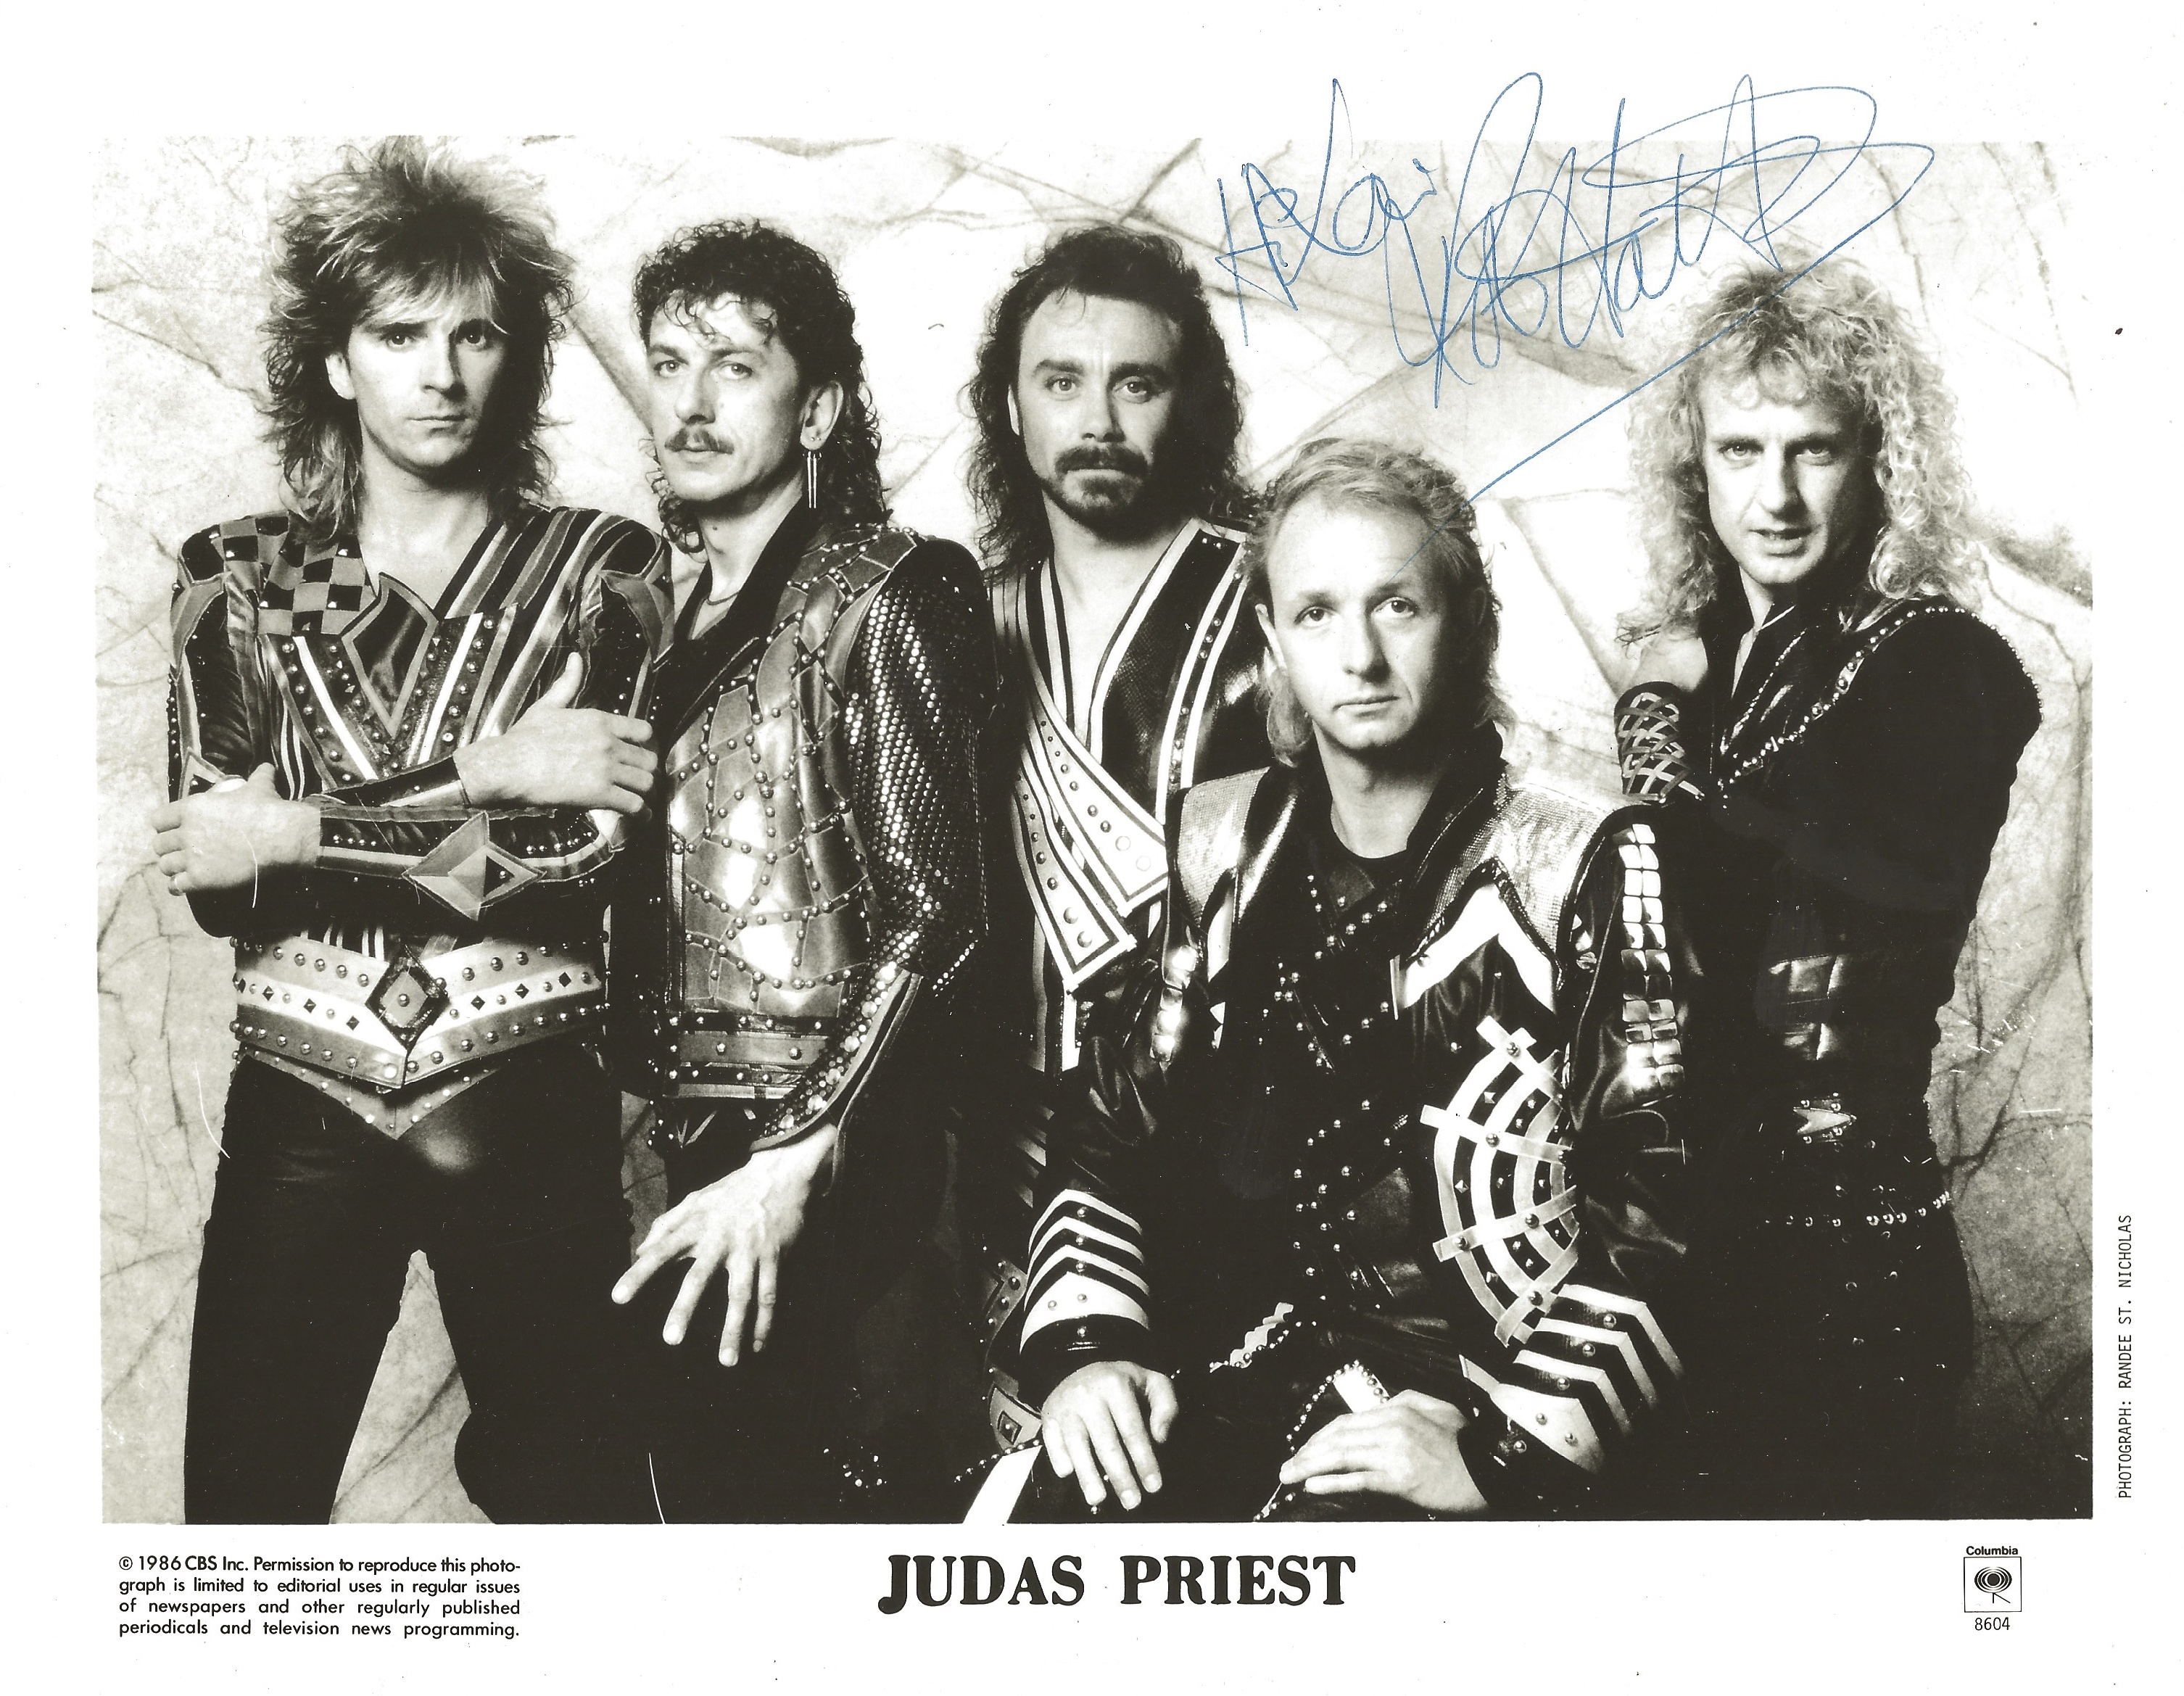 Columbia-Records-rock-band-Judas-Priest-at-a-listening-party-late-80s